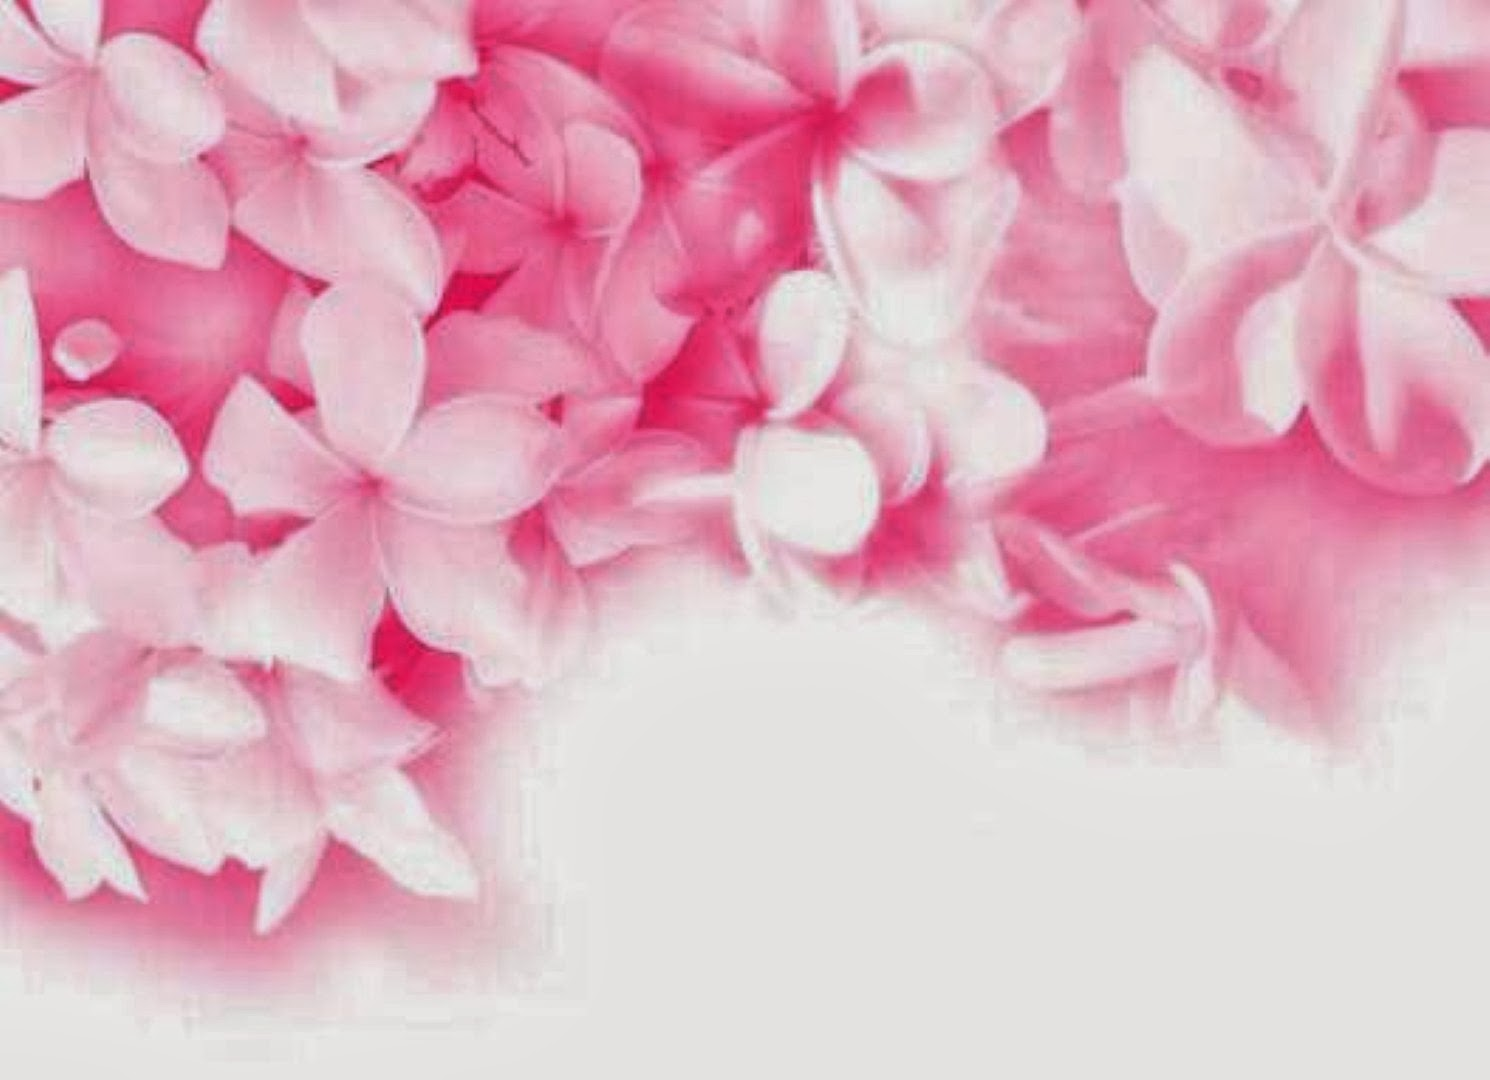 Images of hot pink flowers wallpaper spacehero hot pink flower background hd wallpapers mightylinksfo